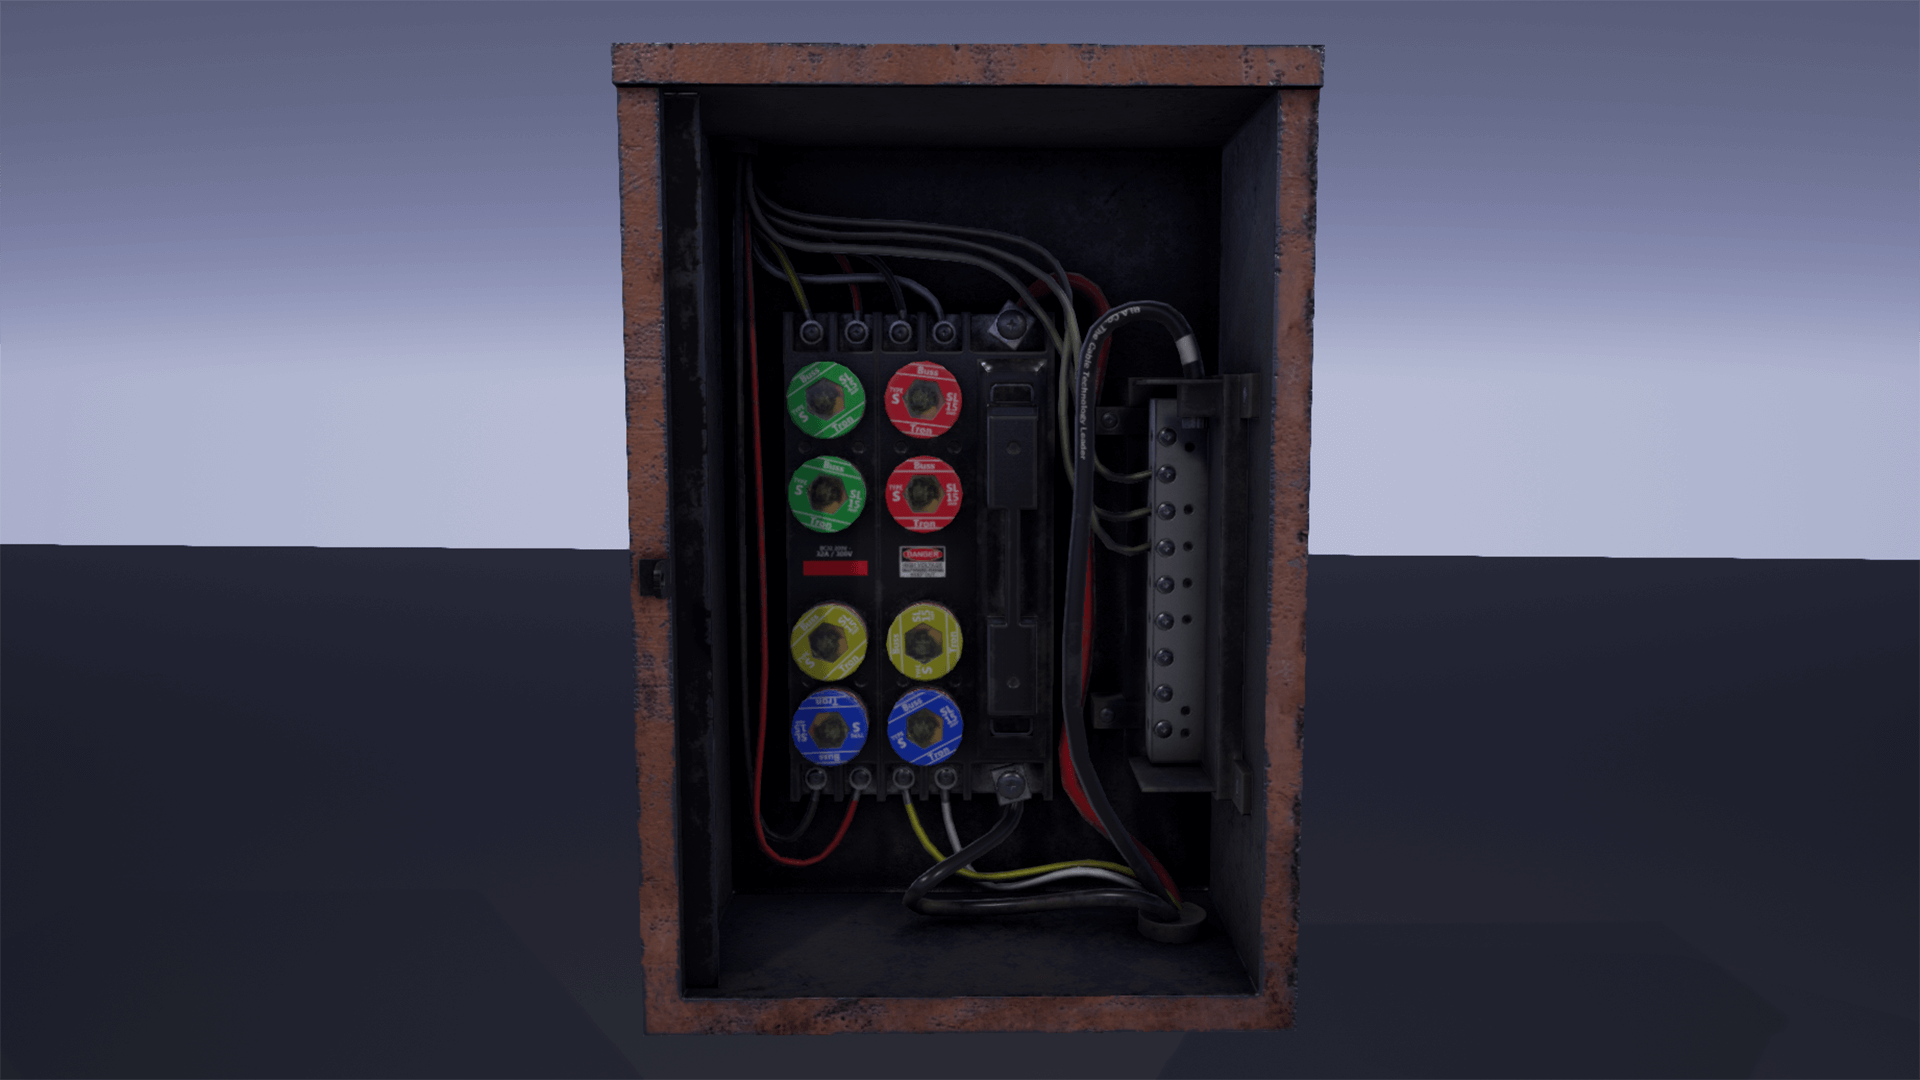 fuse box pack by hyoungjo kim in props